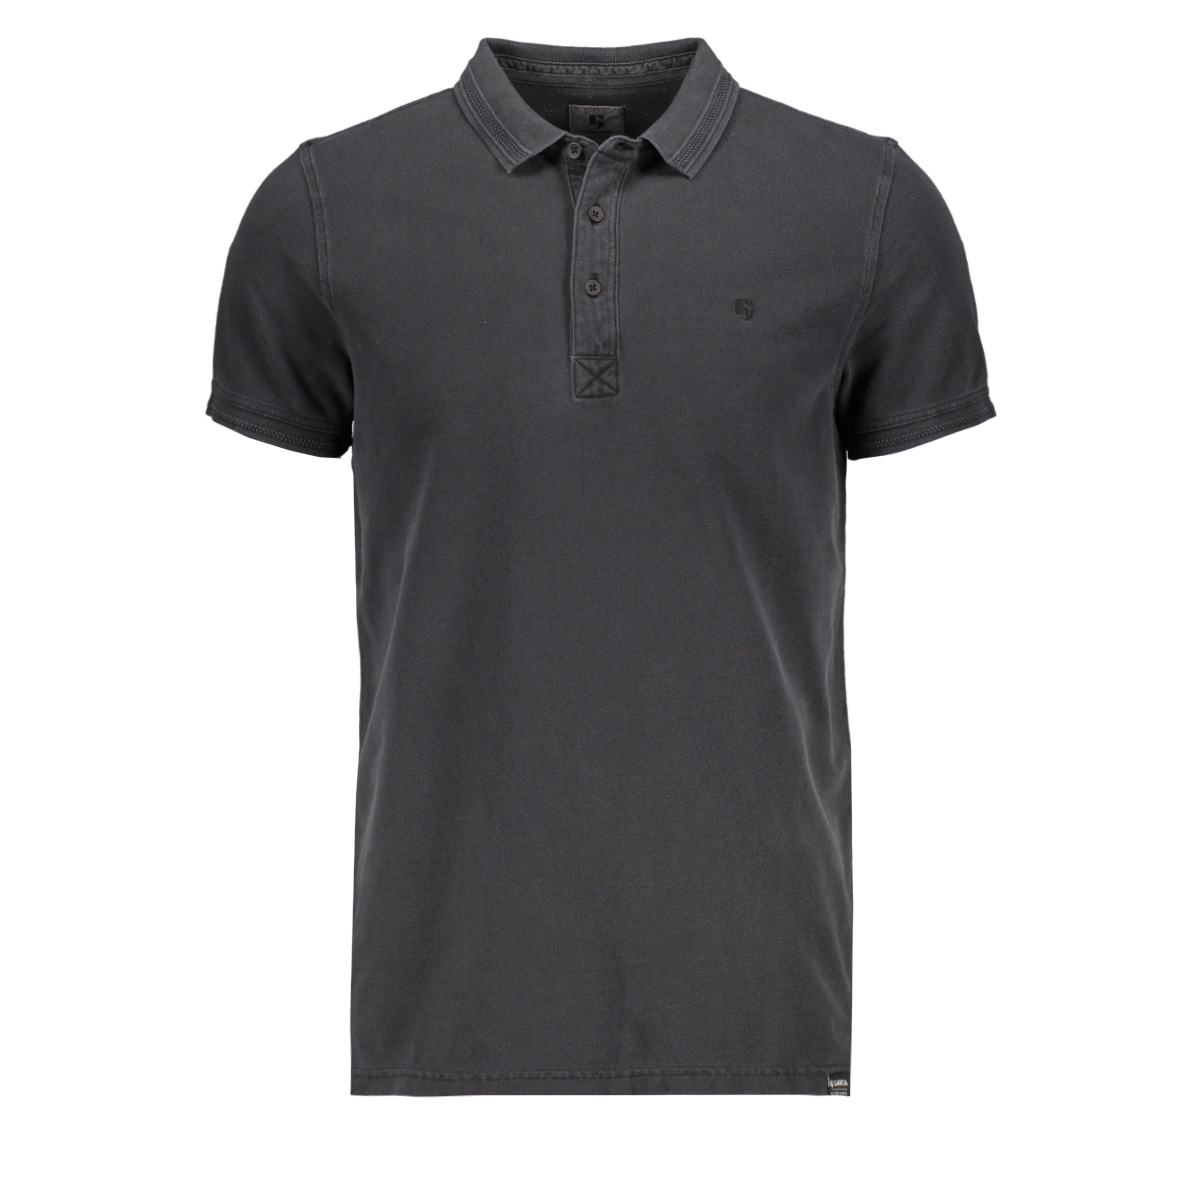 gs910310 garcia polo 60 black